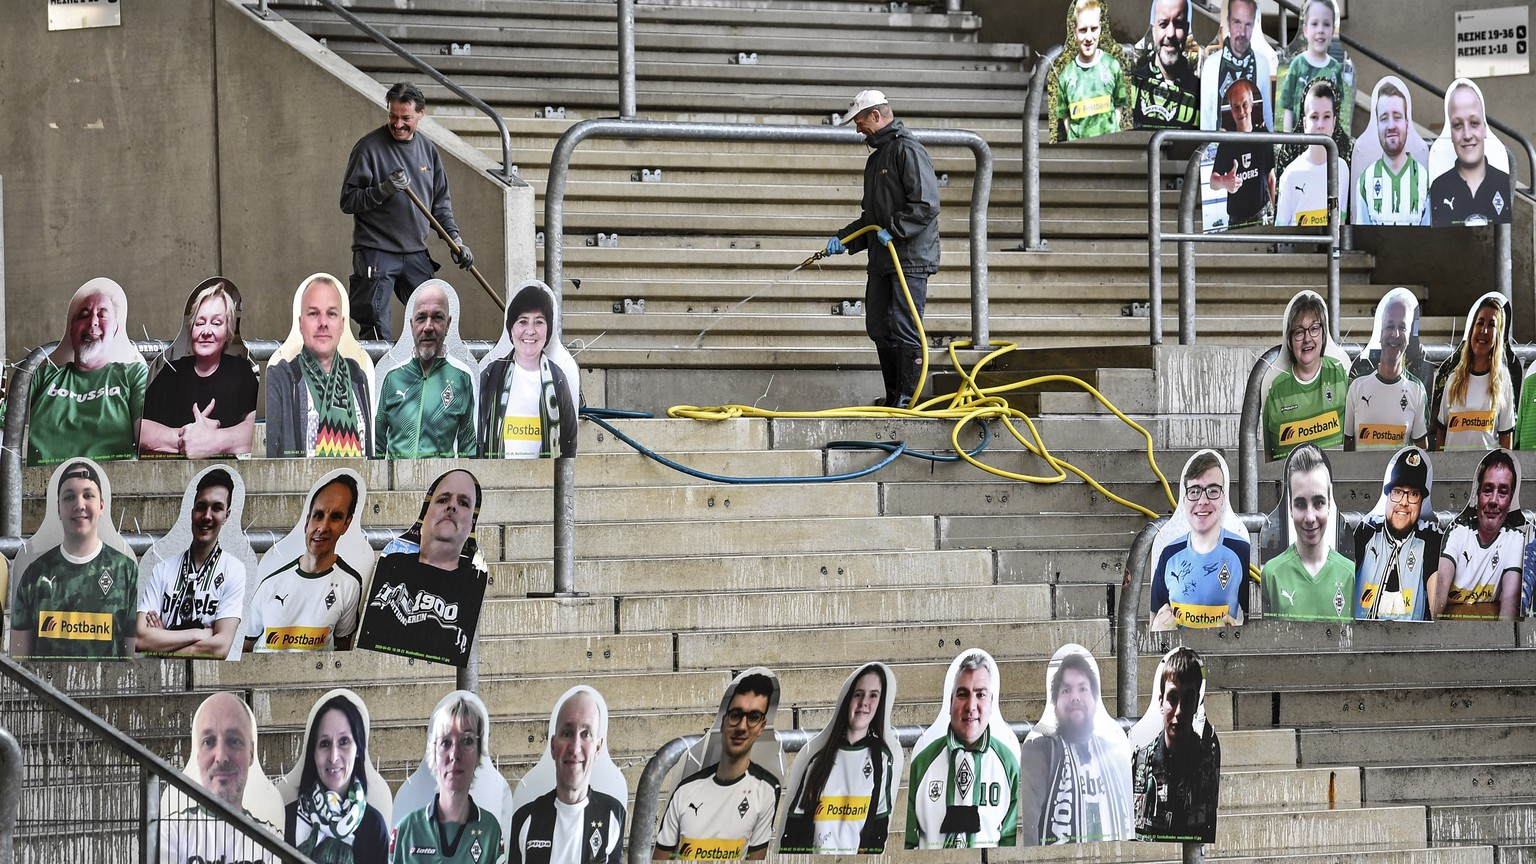 Workers clean the supporters tribune where portraits of fans of German Bundesliga soccer club Borussia Moenchengladbach are set in the stadium in Moenchengladbach, Germany, Thursday, April 16, 2020. All major events in Germany are suspended due to the coronavirus outbreak until the end of August, the German Bundesliga suspended all matches until April 30, 2020. (AP Photo/Martin Meissner)